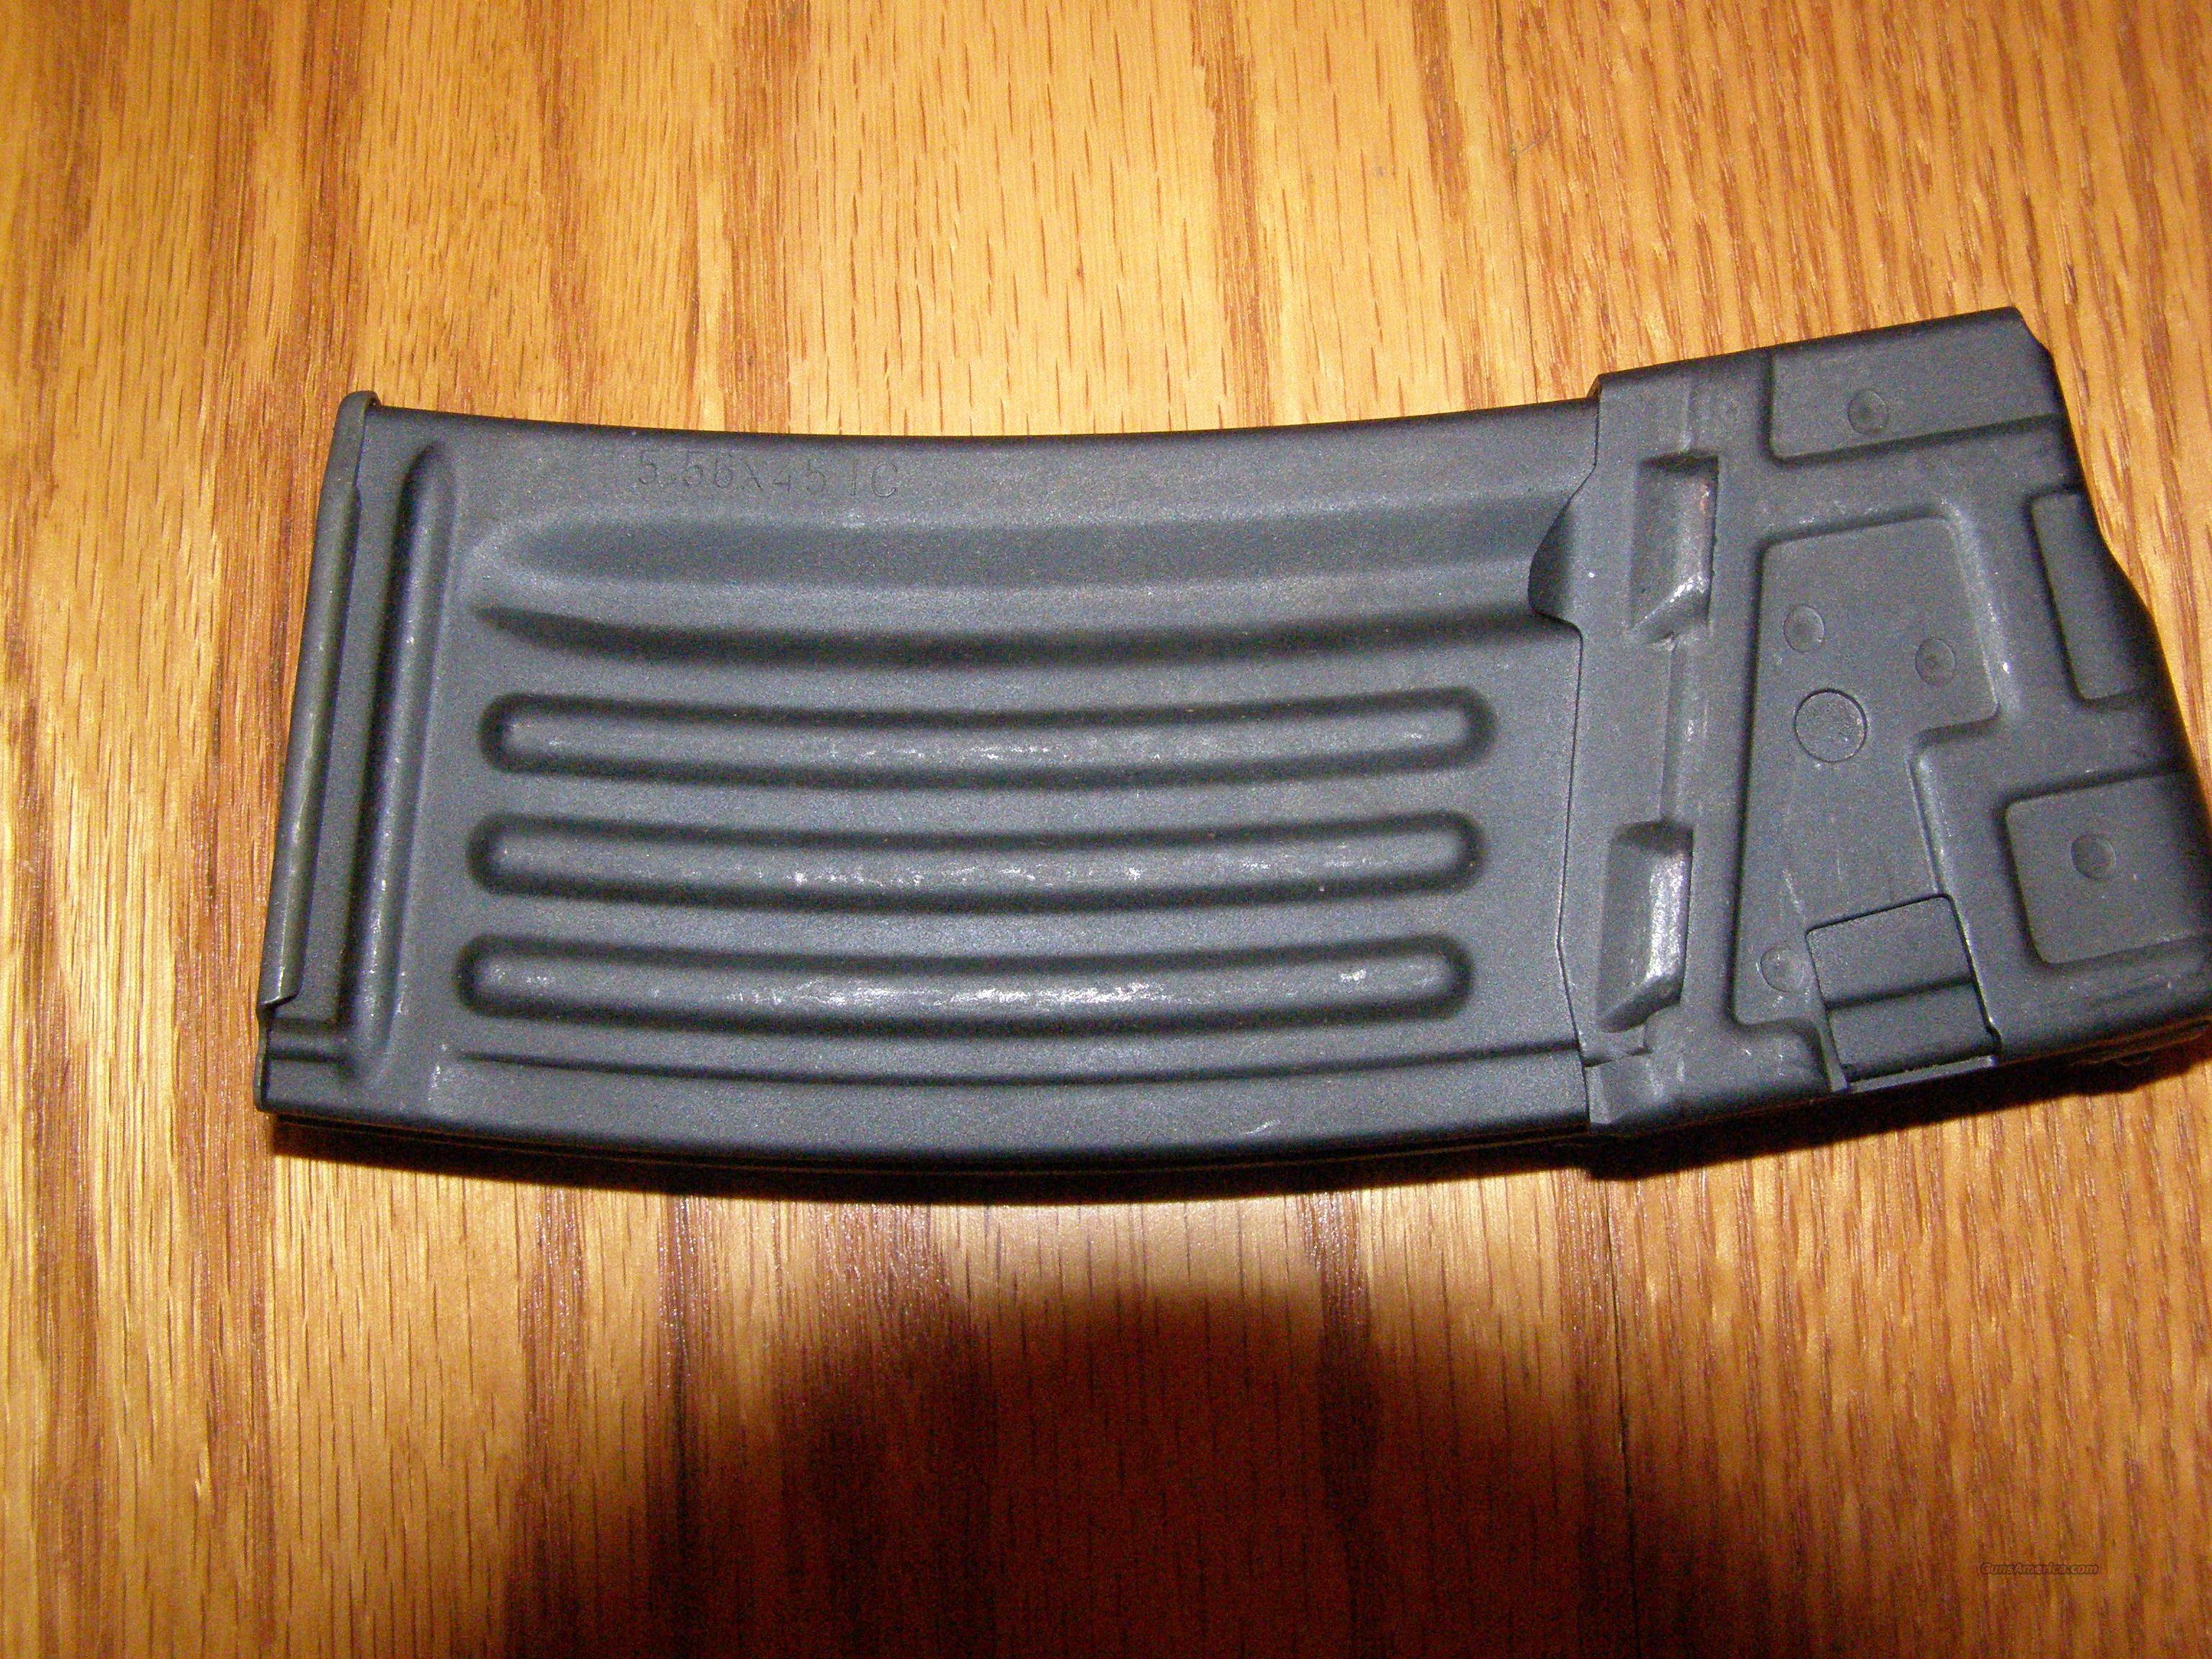 HK 93 factory 25rd mags,new  Non-Guns > Magazines & Clips > Rifle Magazines > HK/CETME